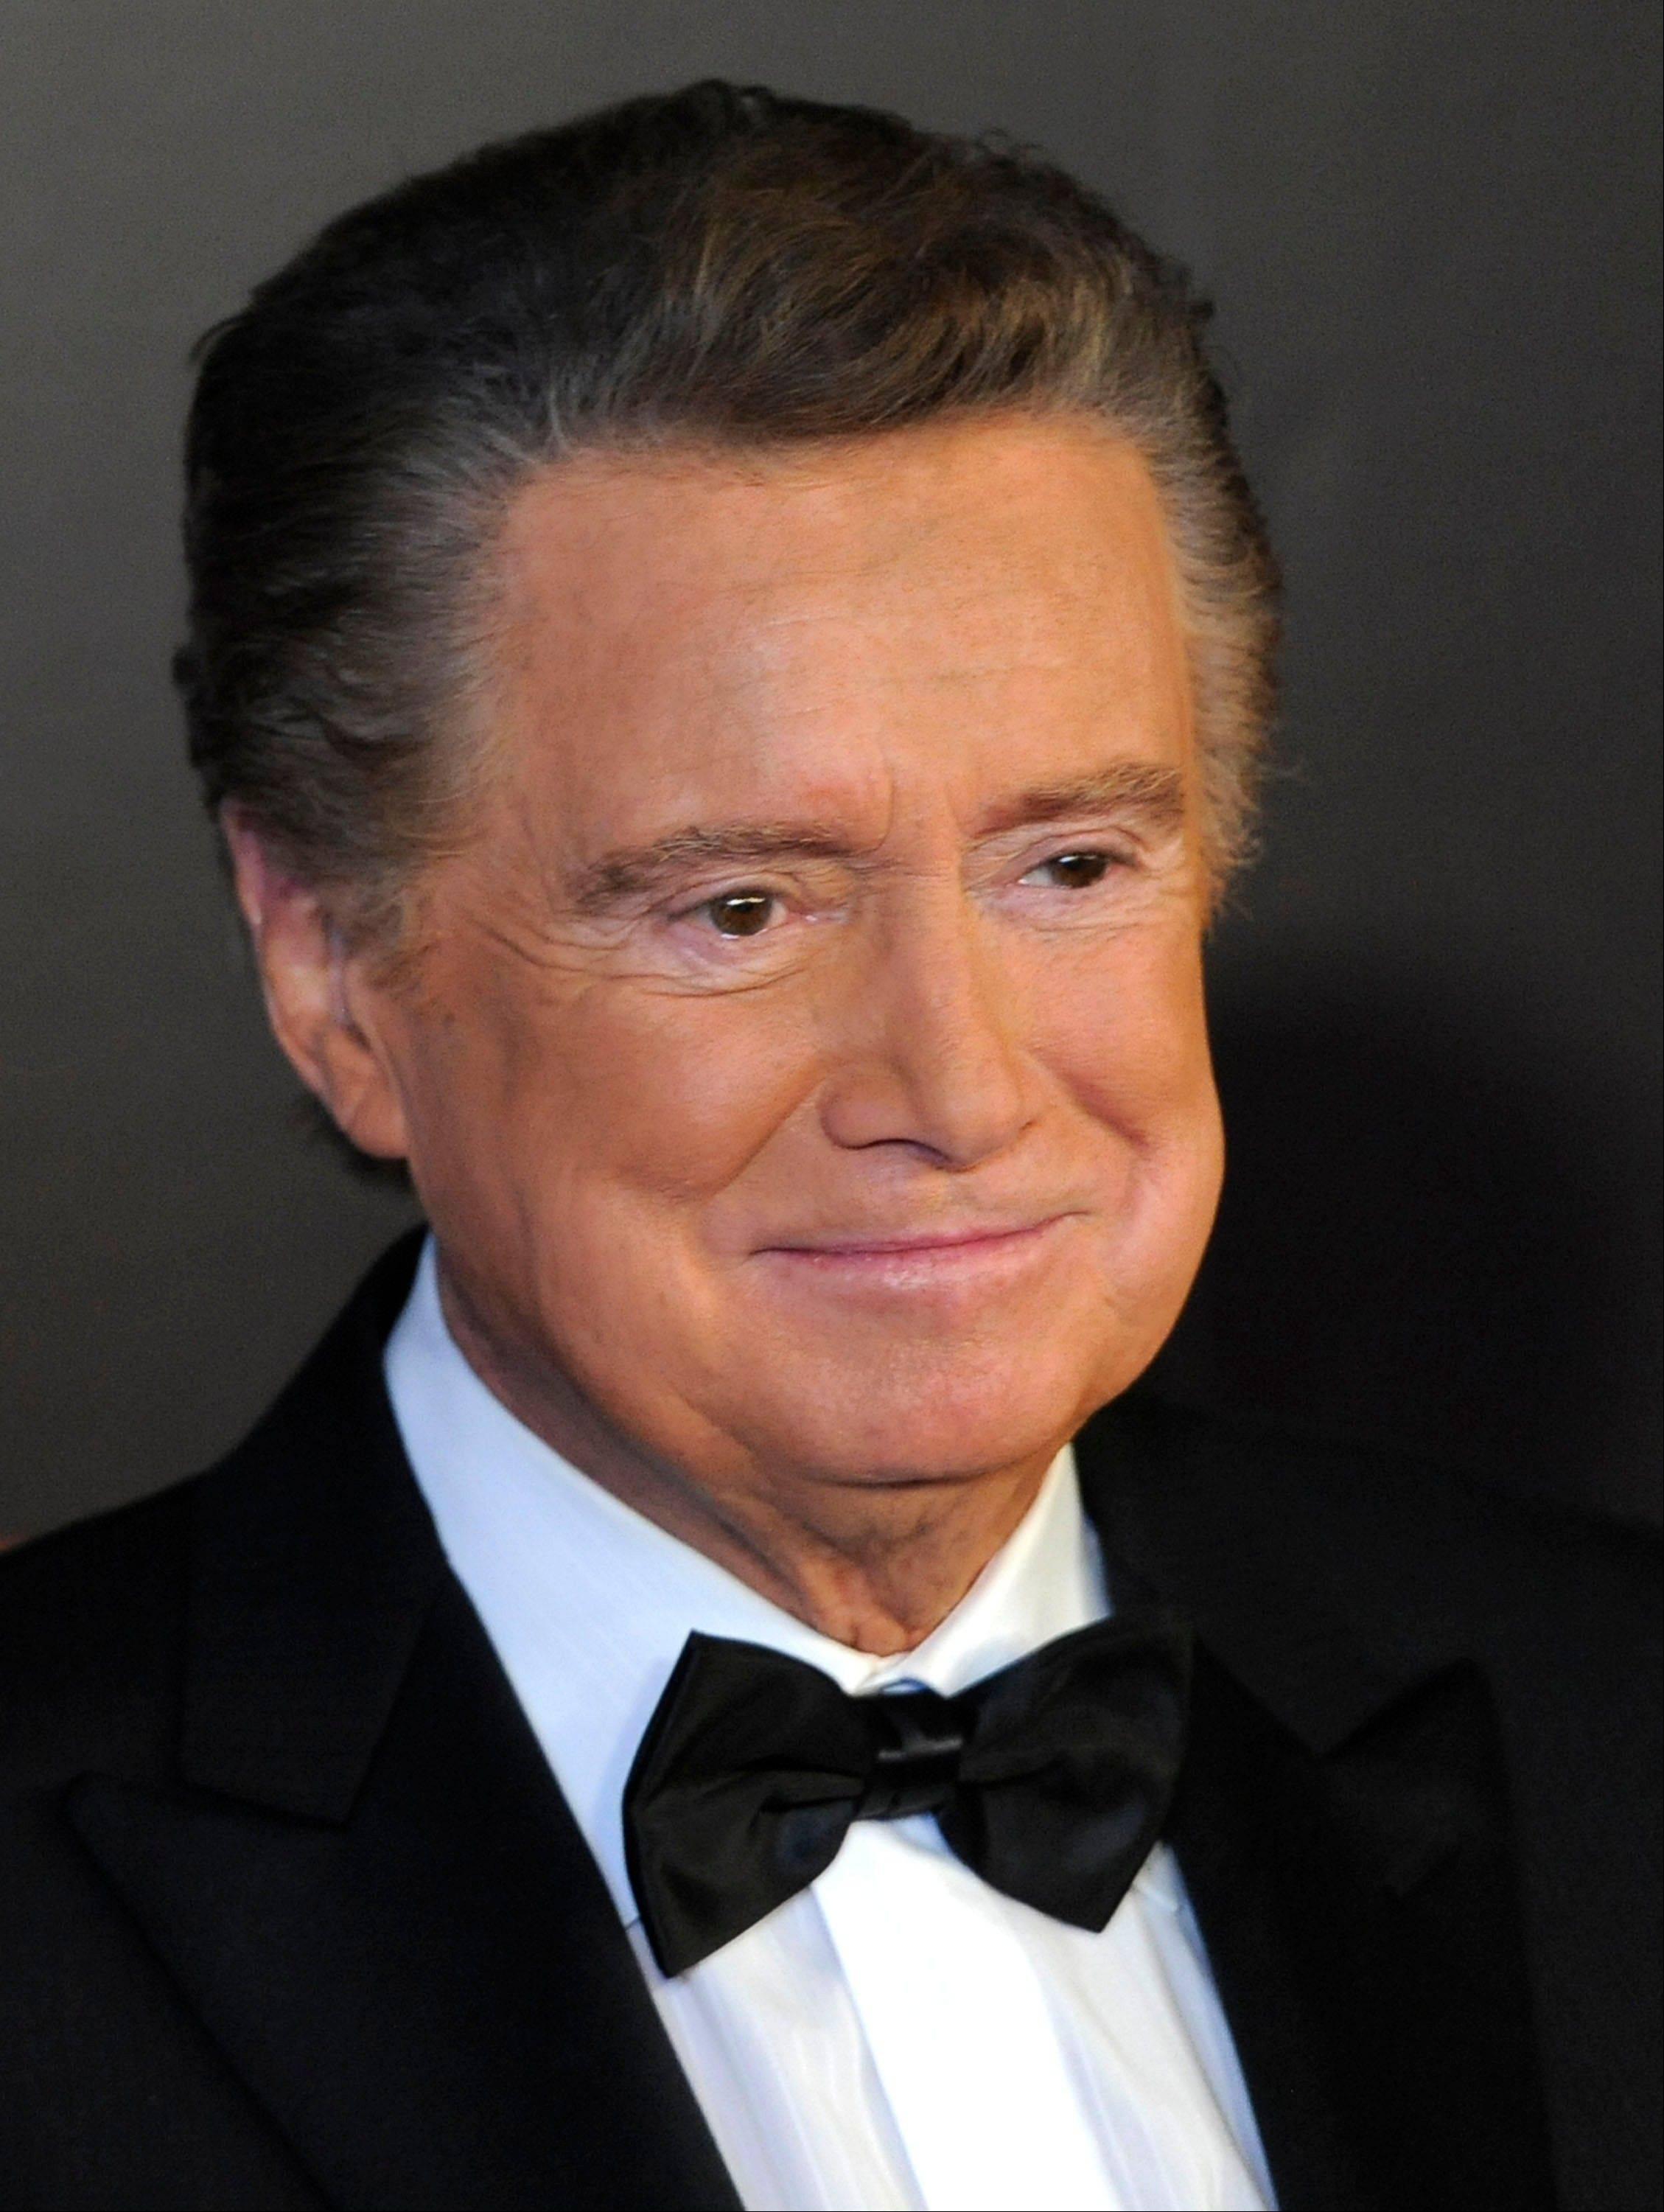 Television host Regis Philbin says he'll retire from his talk show on Nov. 18.